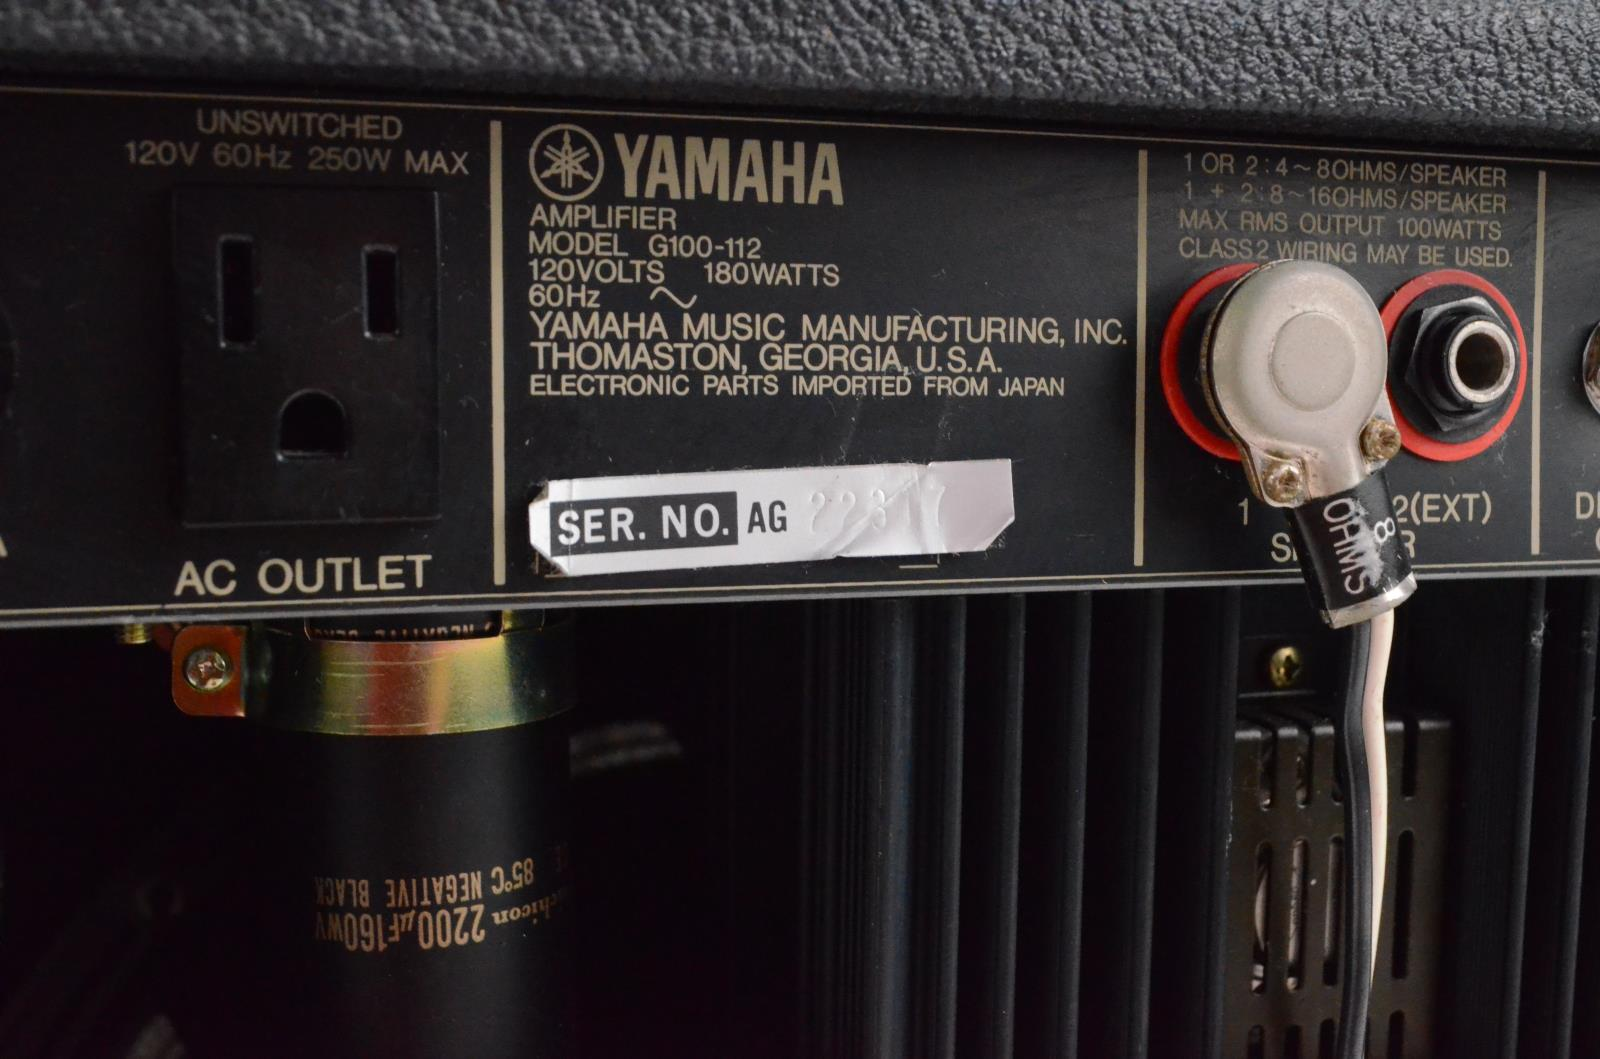 Yamaha G100 112 Combo Amplifier Amp W Anvil Case Owned By Carlos Class 2 Audio Wiring Rios